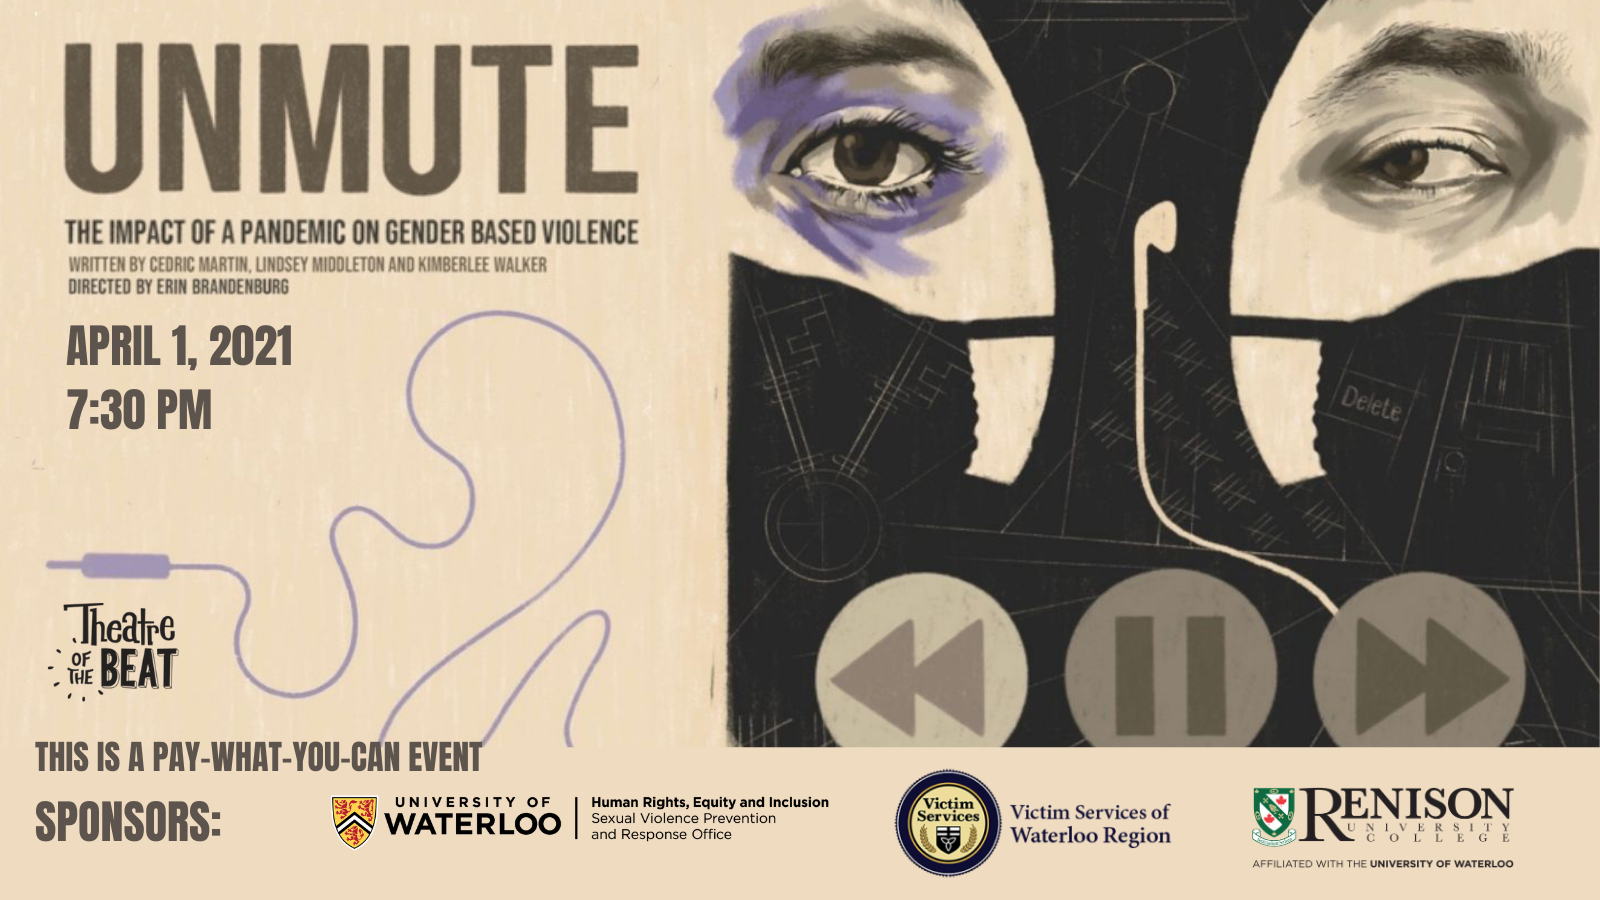 Unmute poster with logos for Uwaterloo HREI, Victim Services Waterloo Region, Theatre of the Beat, and Renison.